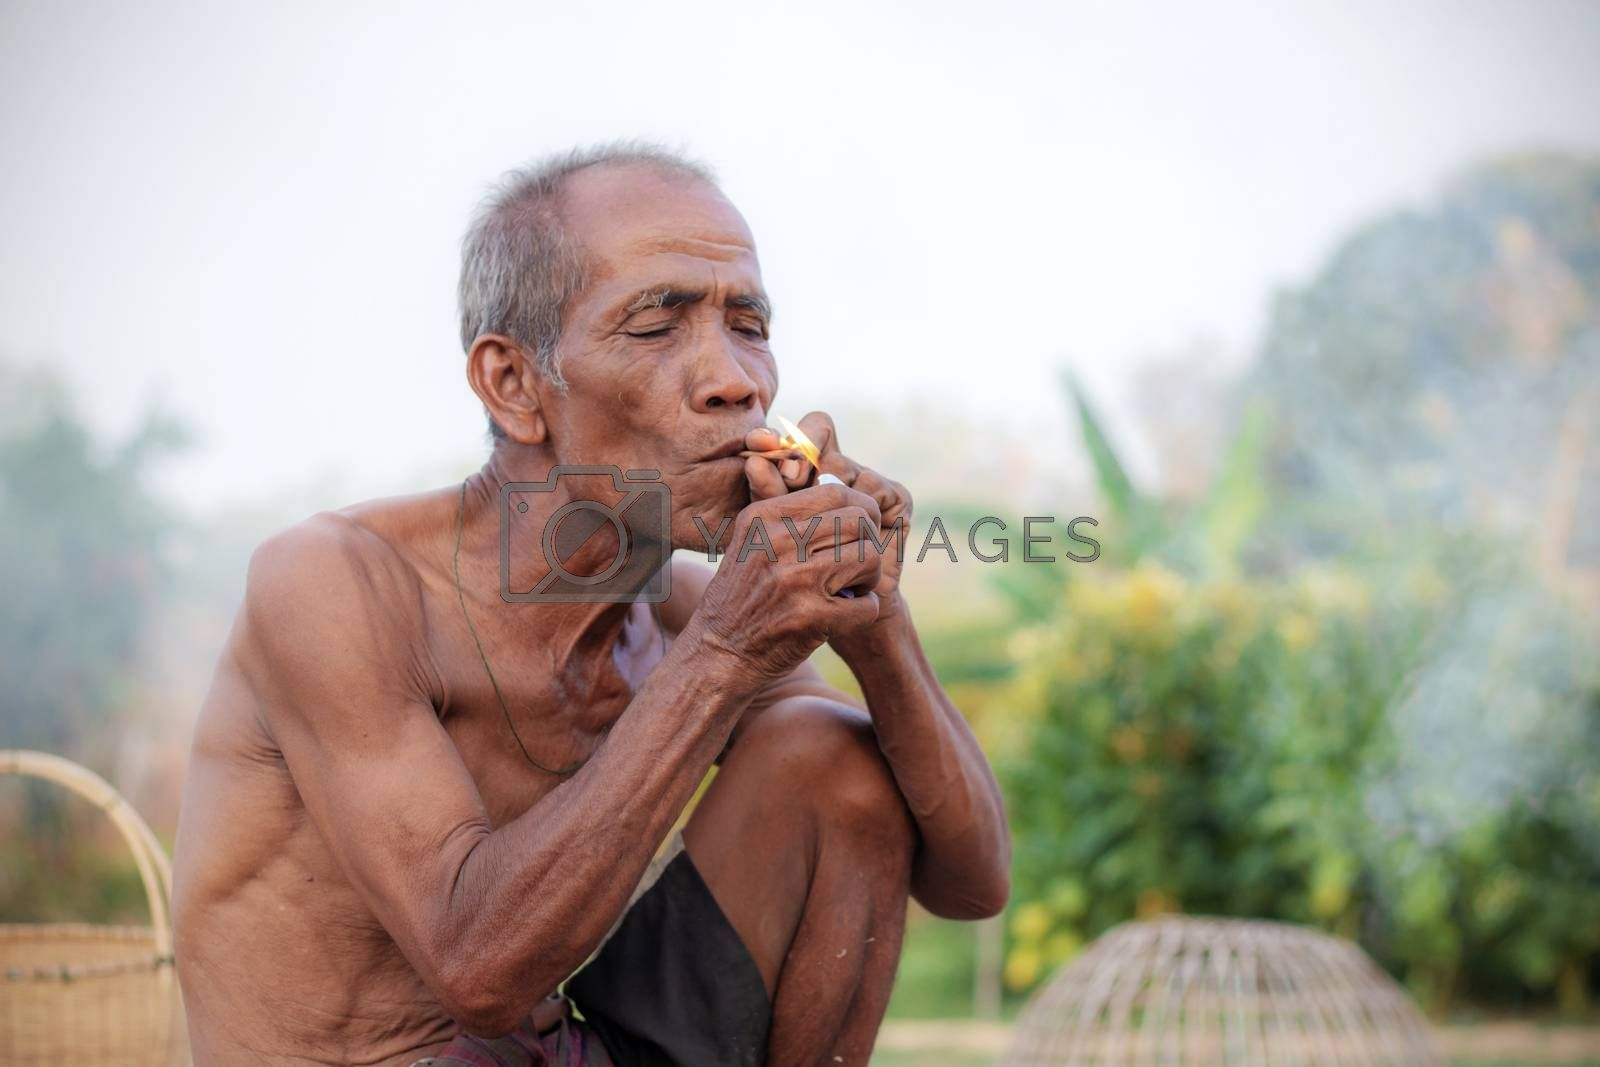 Older people are smoking. by start08